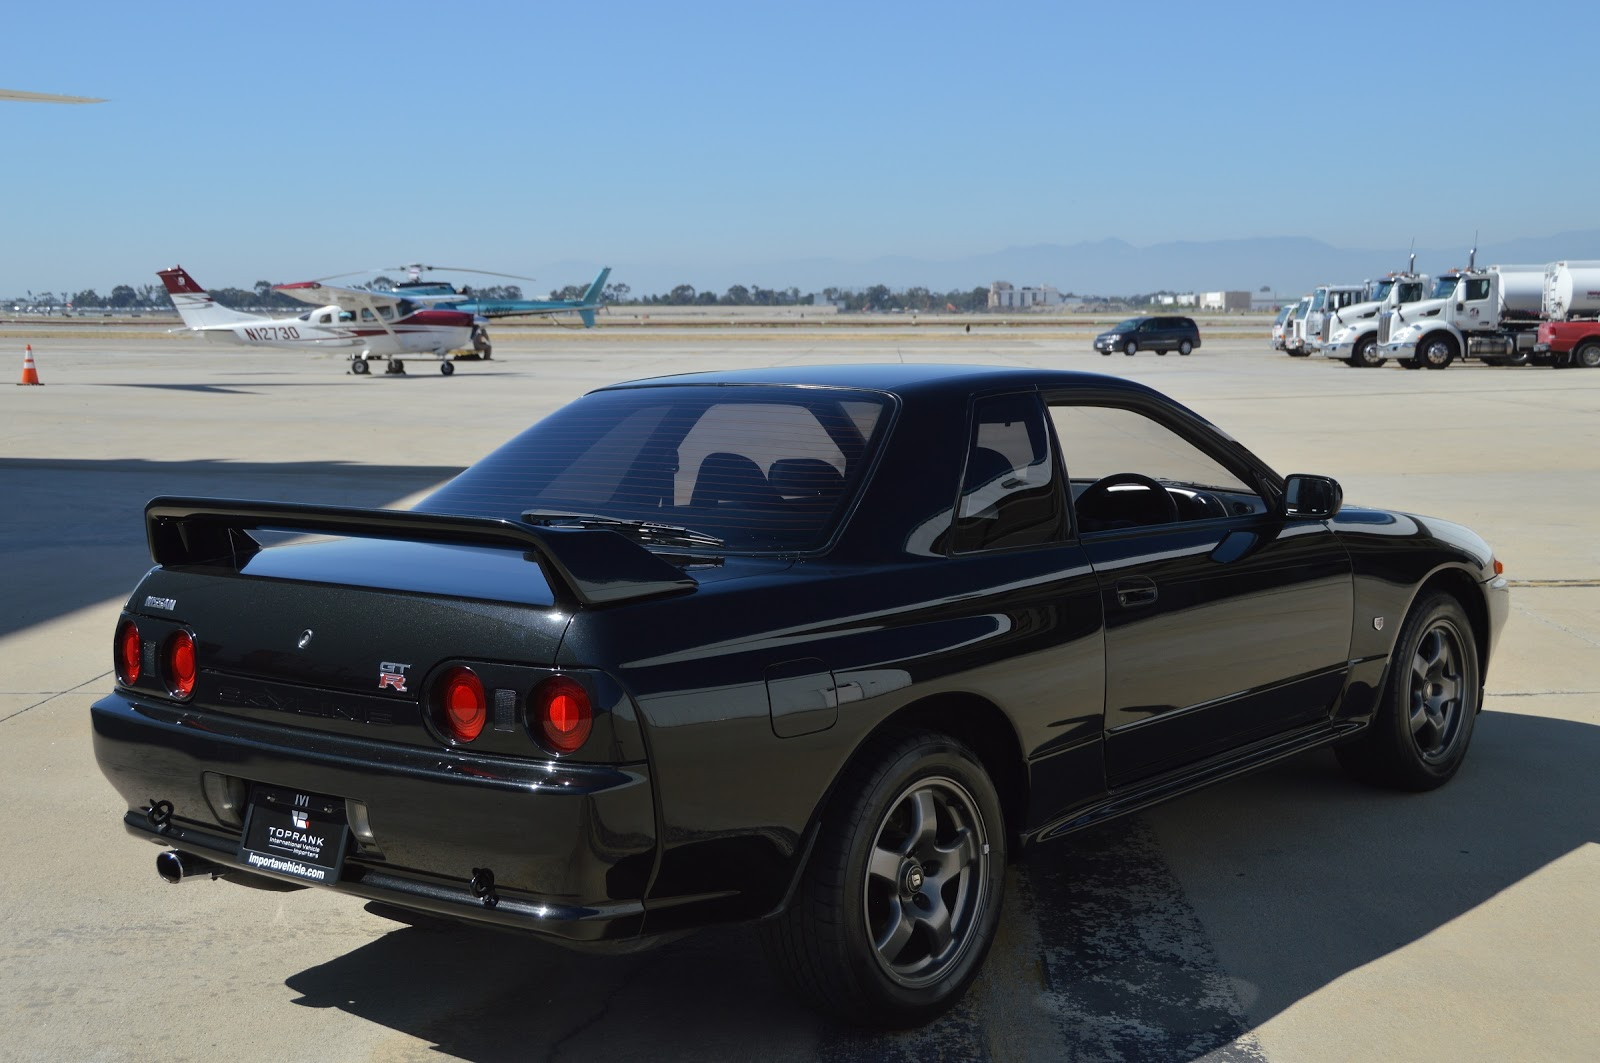 nissan skyline gt r s in the usa blog 1990 nissan skyline gt r r32 for sale in long beach. Black Bedroom Furniture Sets. Home Design Ideas